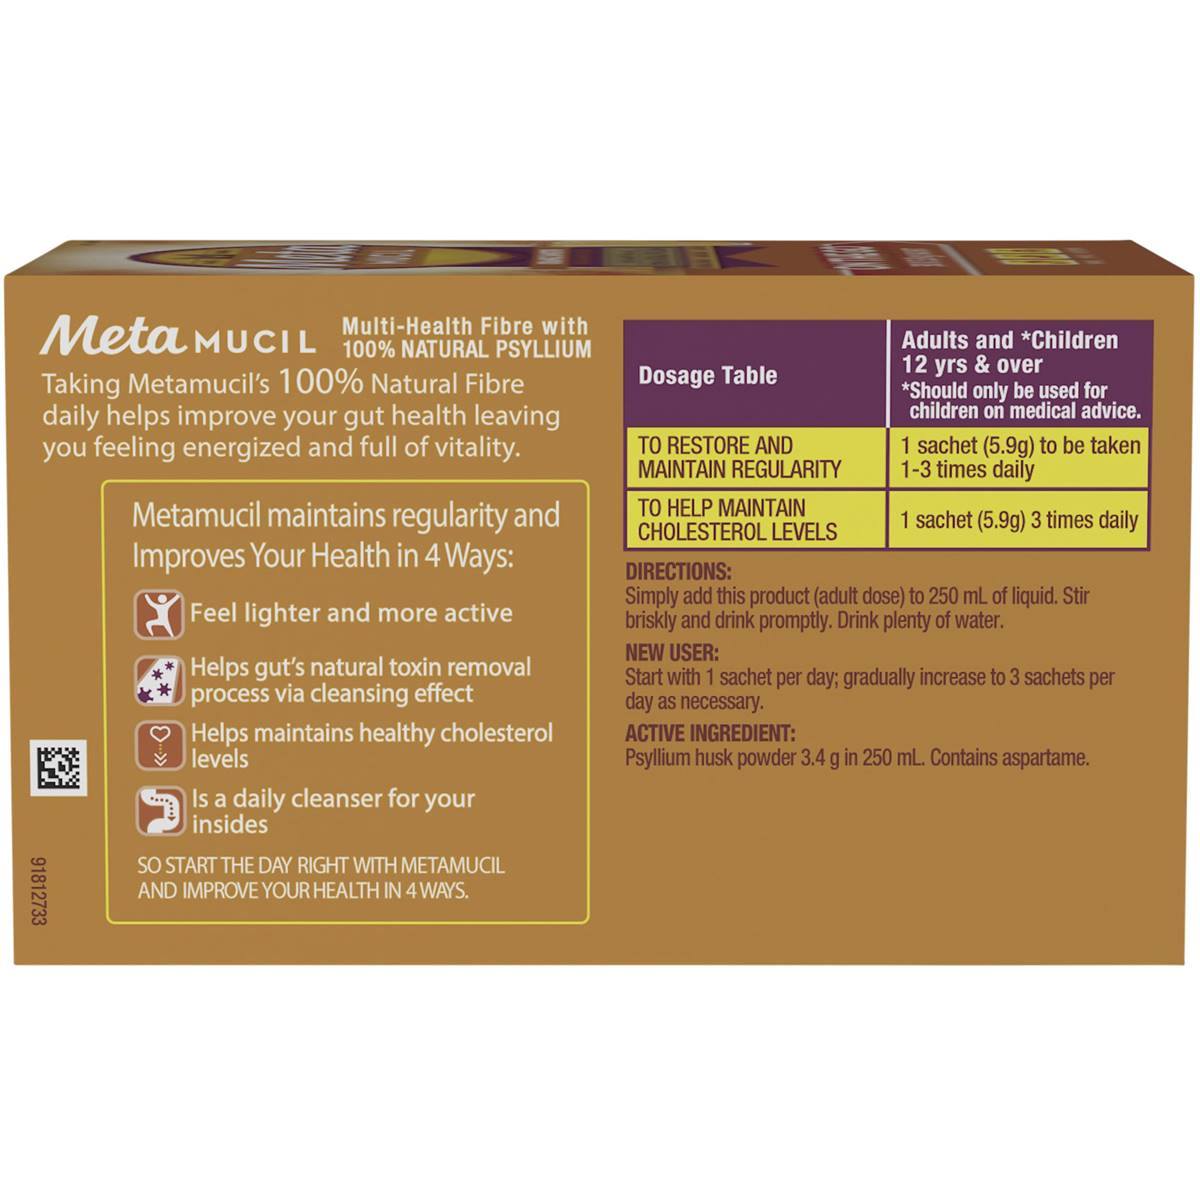 metamucil instructions for use